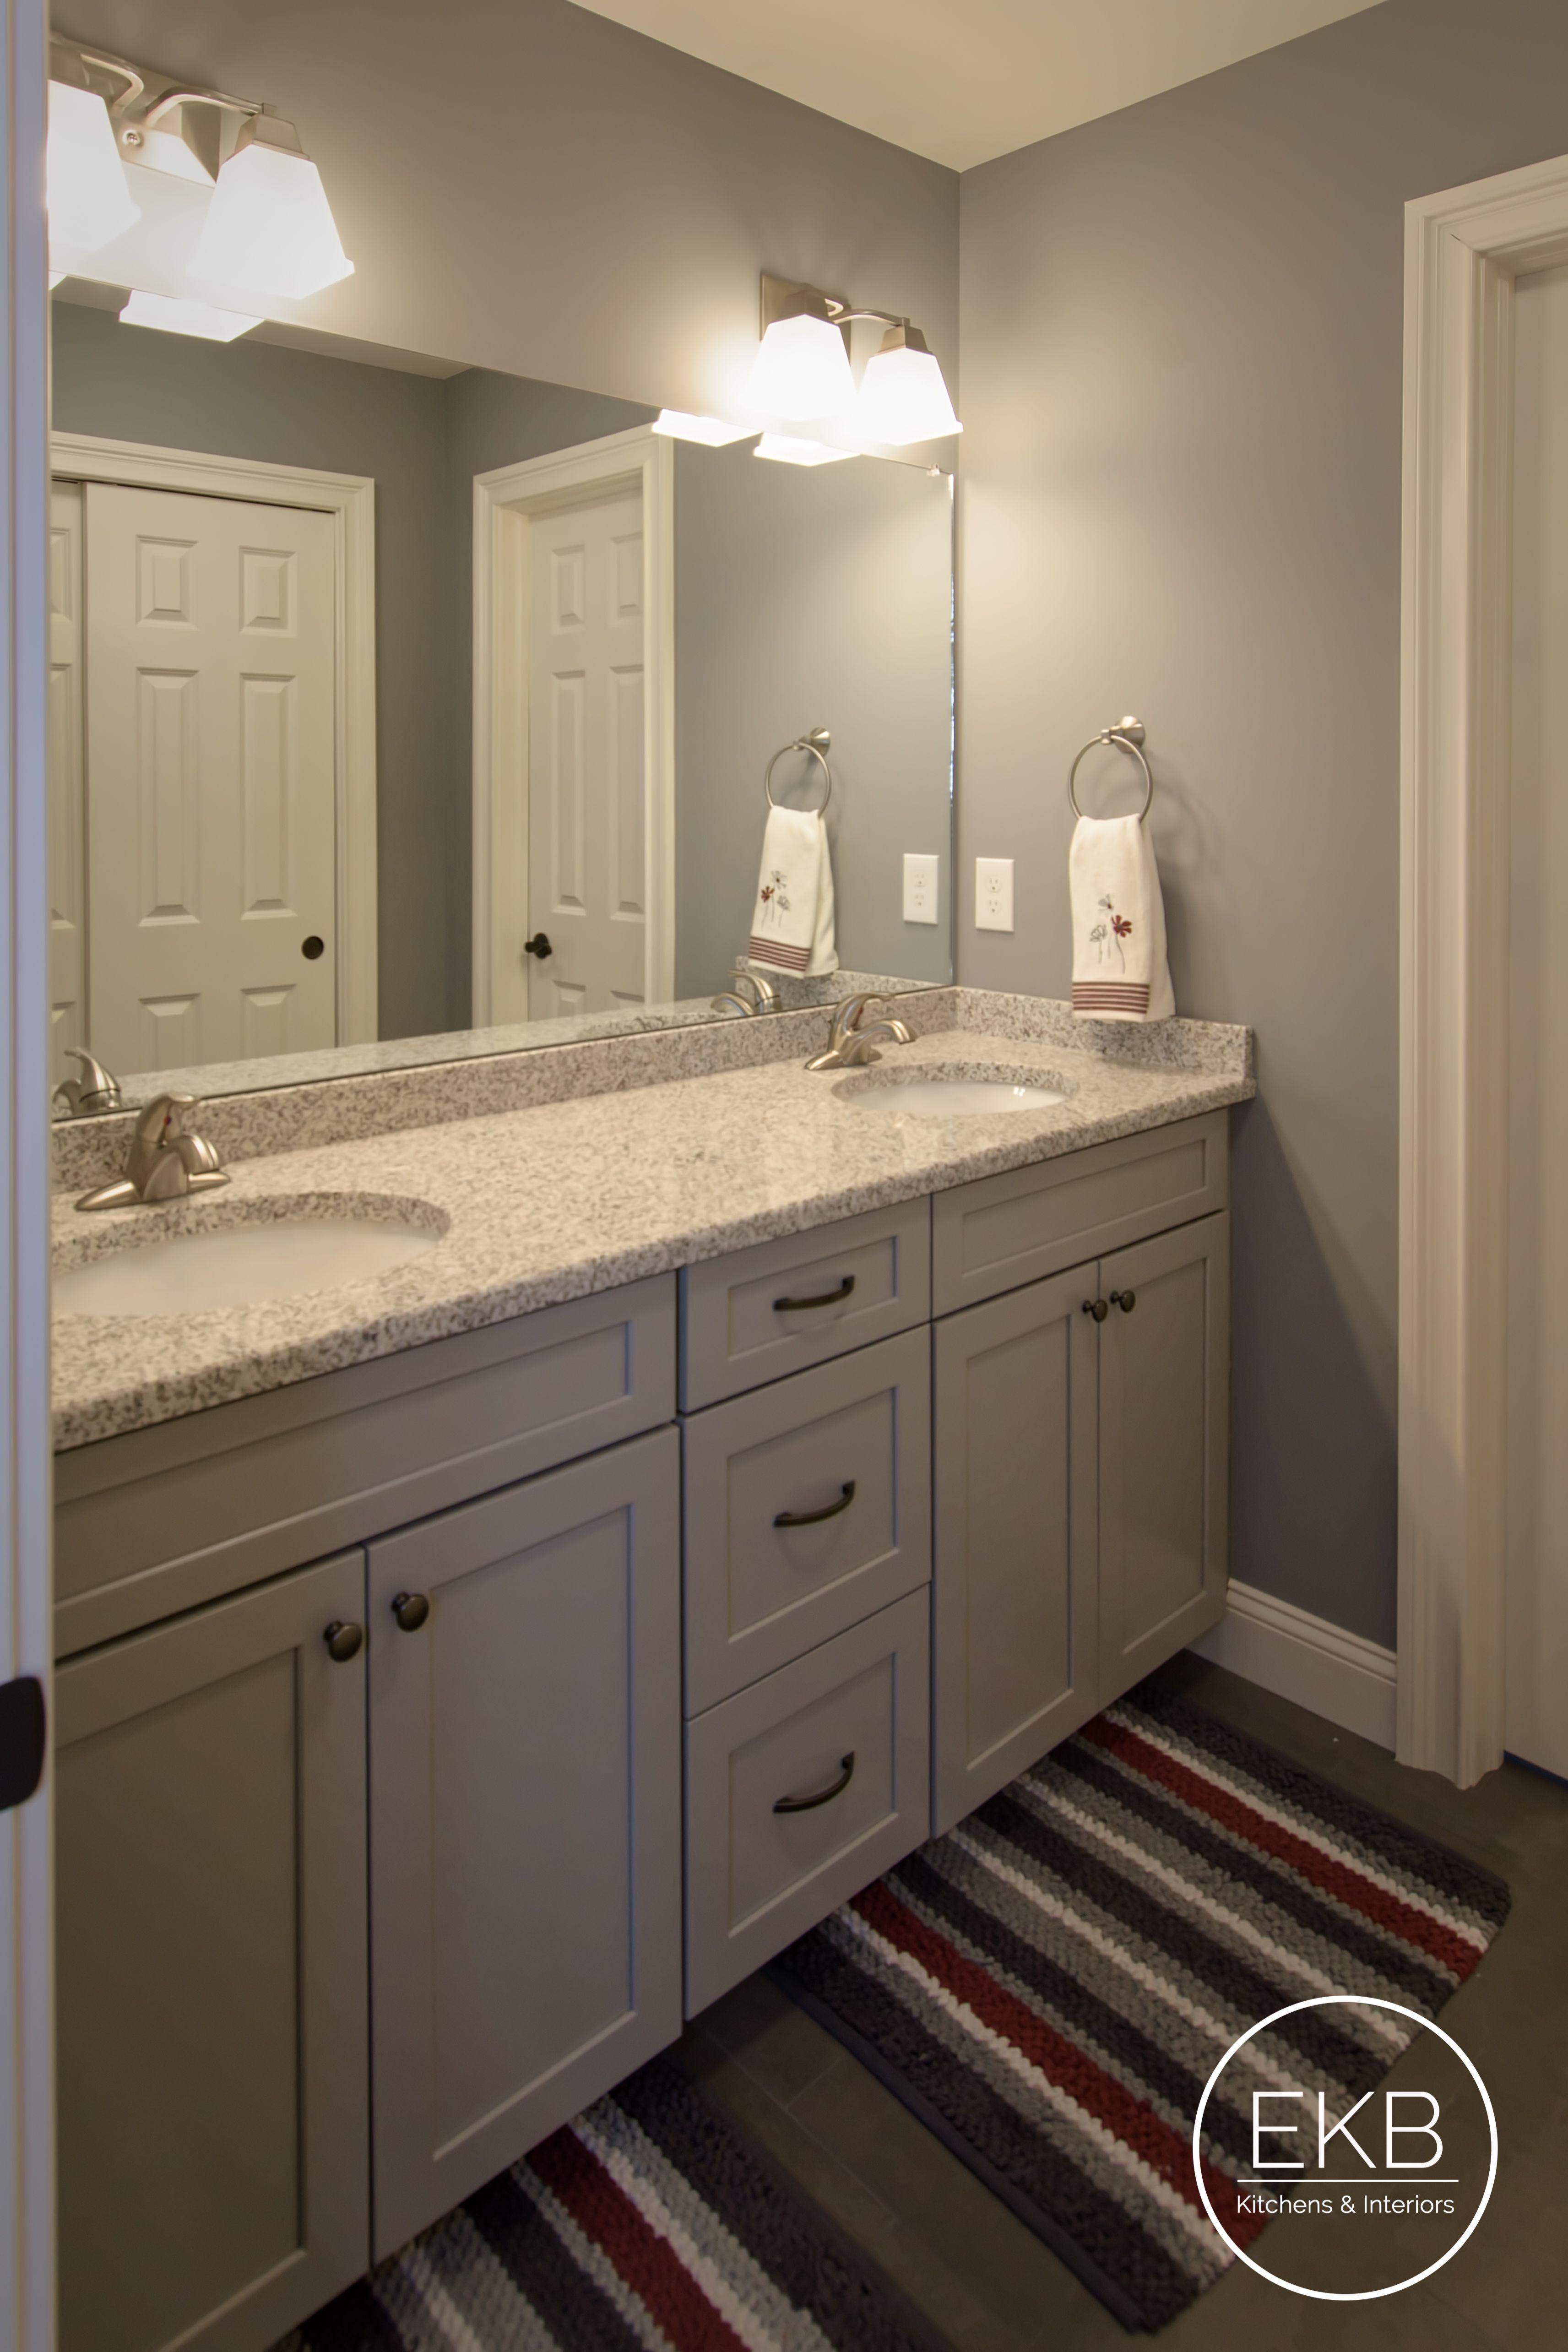 Waypoint Living Spaces 410f Painted Stone Cabinets And Luna Pearl Granite Countertops Luna Pearl Granite Granite Bathroom Granite Bathroom Countertops